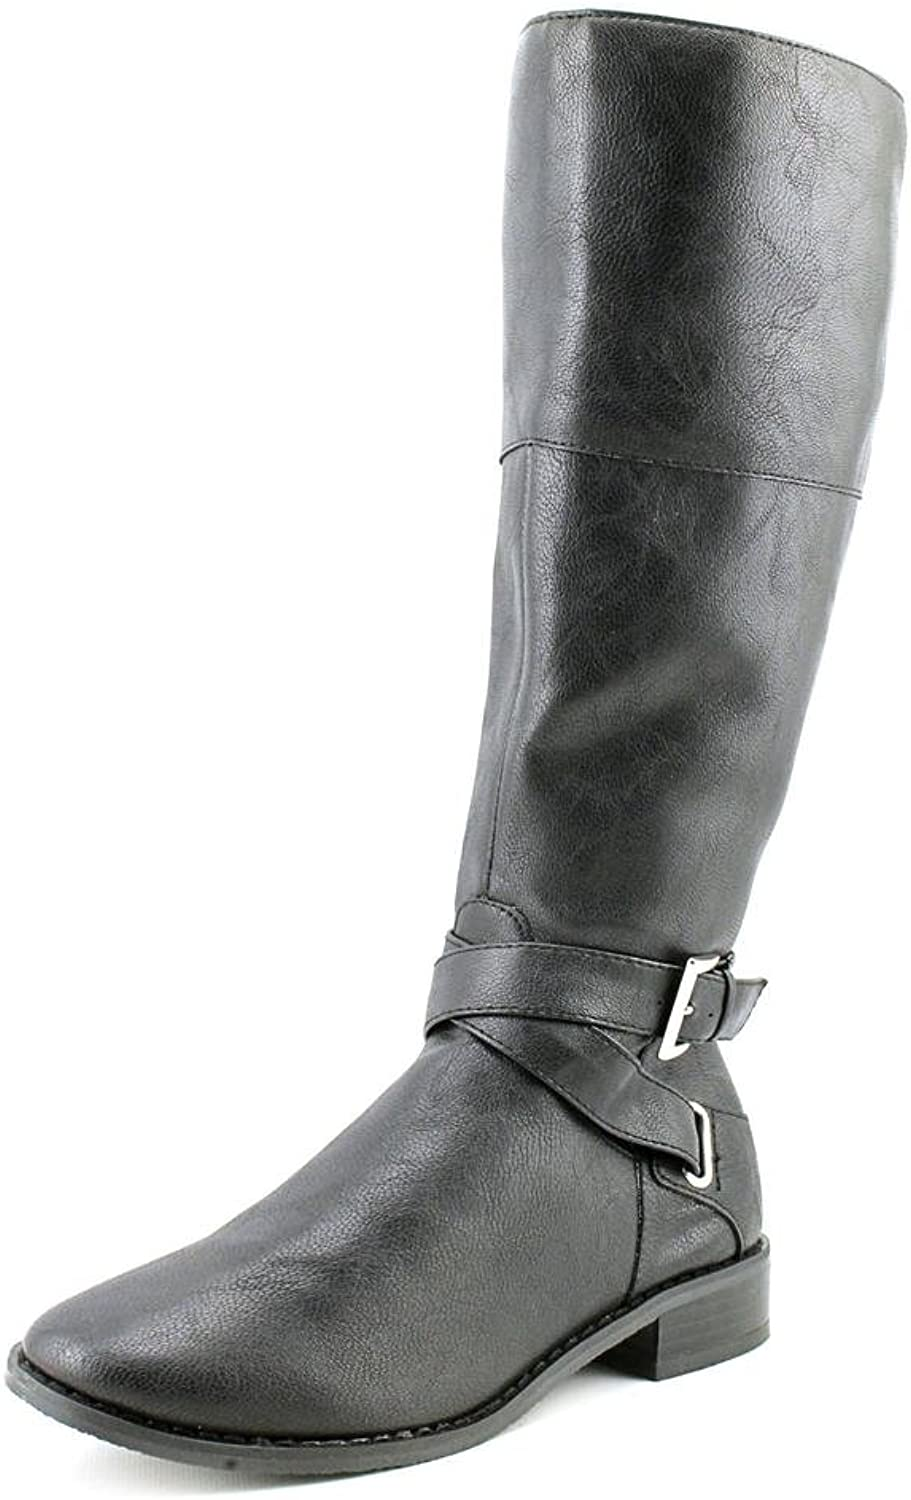 Karen Scott Paige Knee High Tall Riding Boot shoes Synthetic Black Size 10